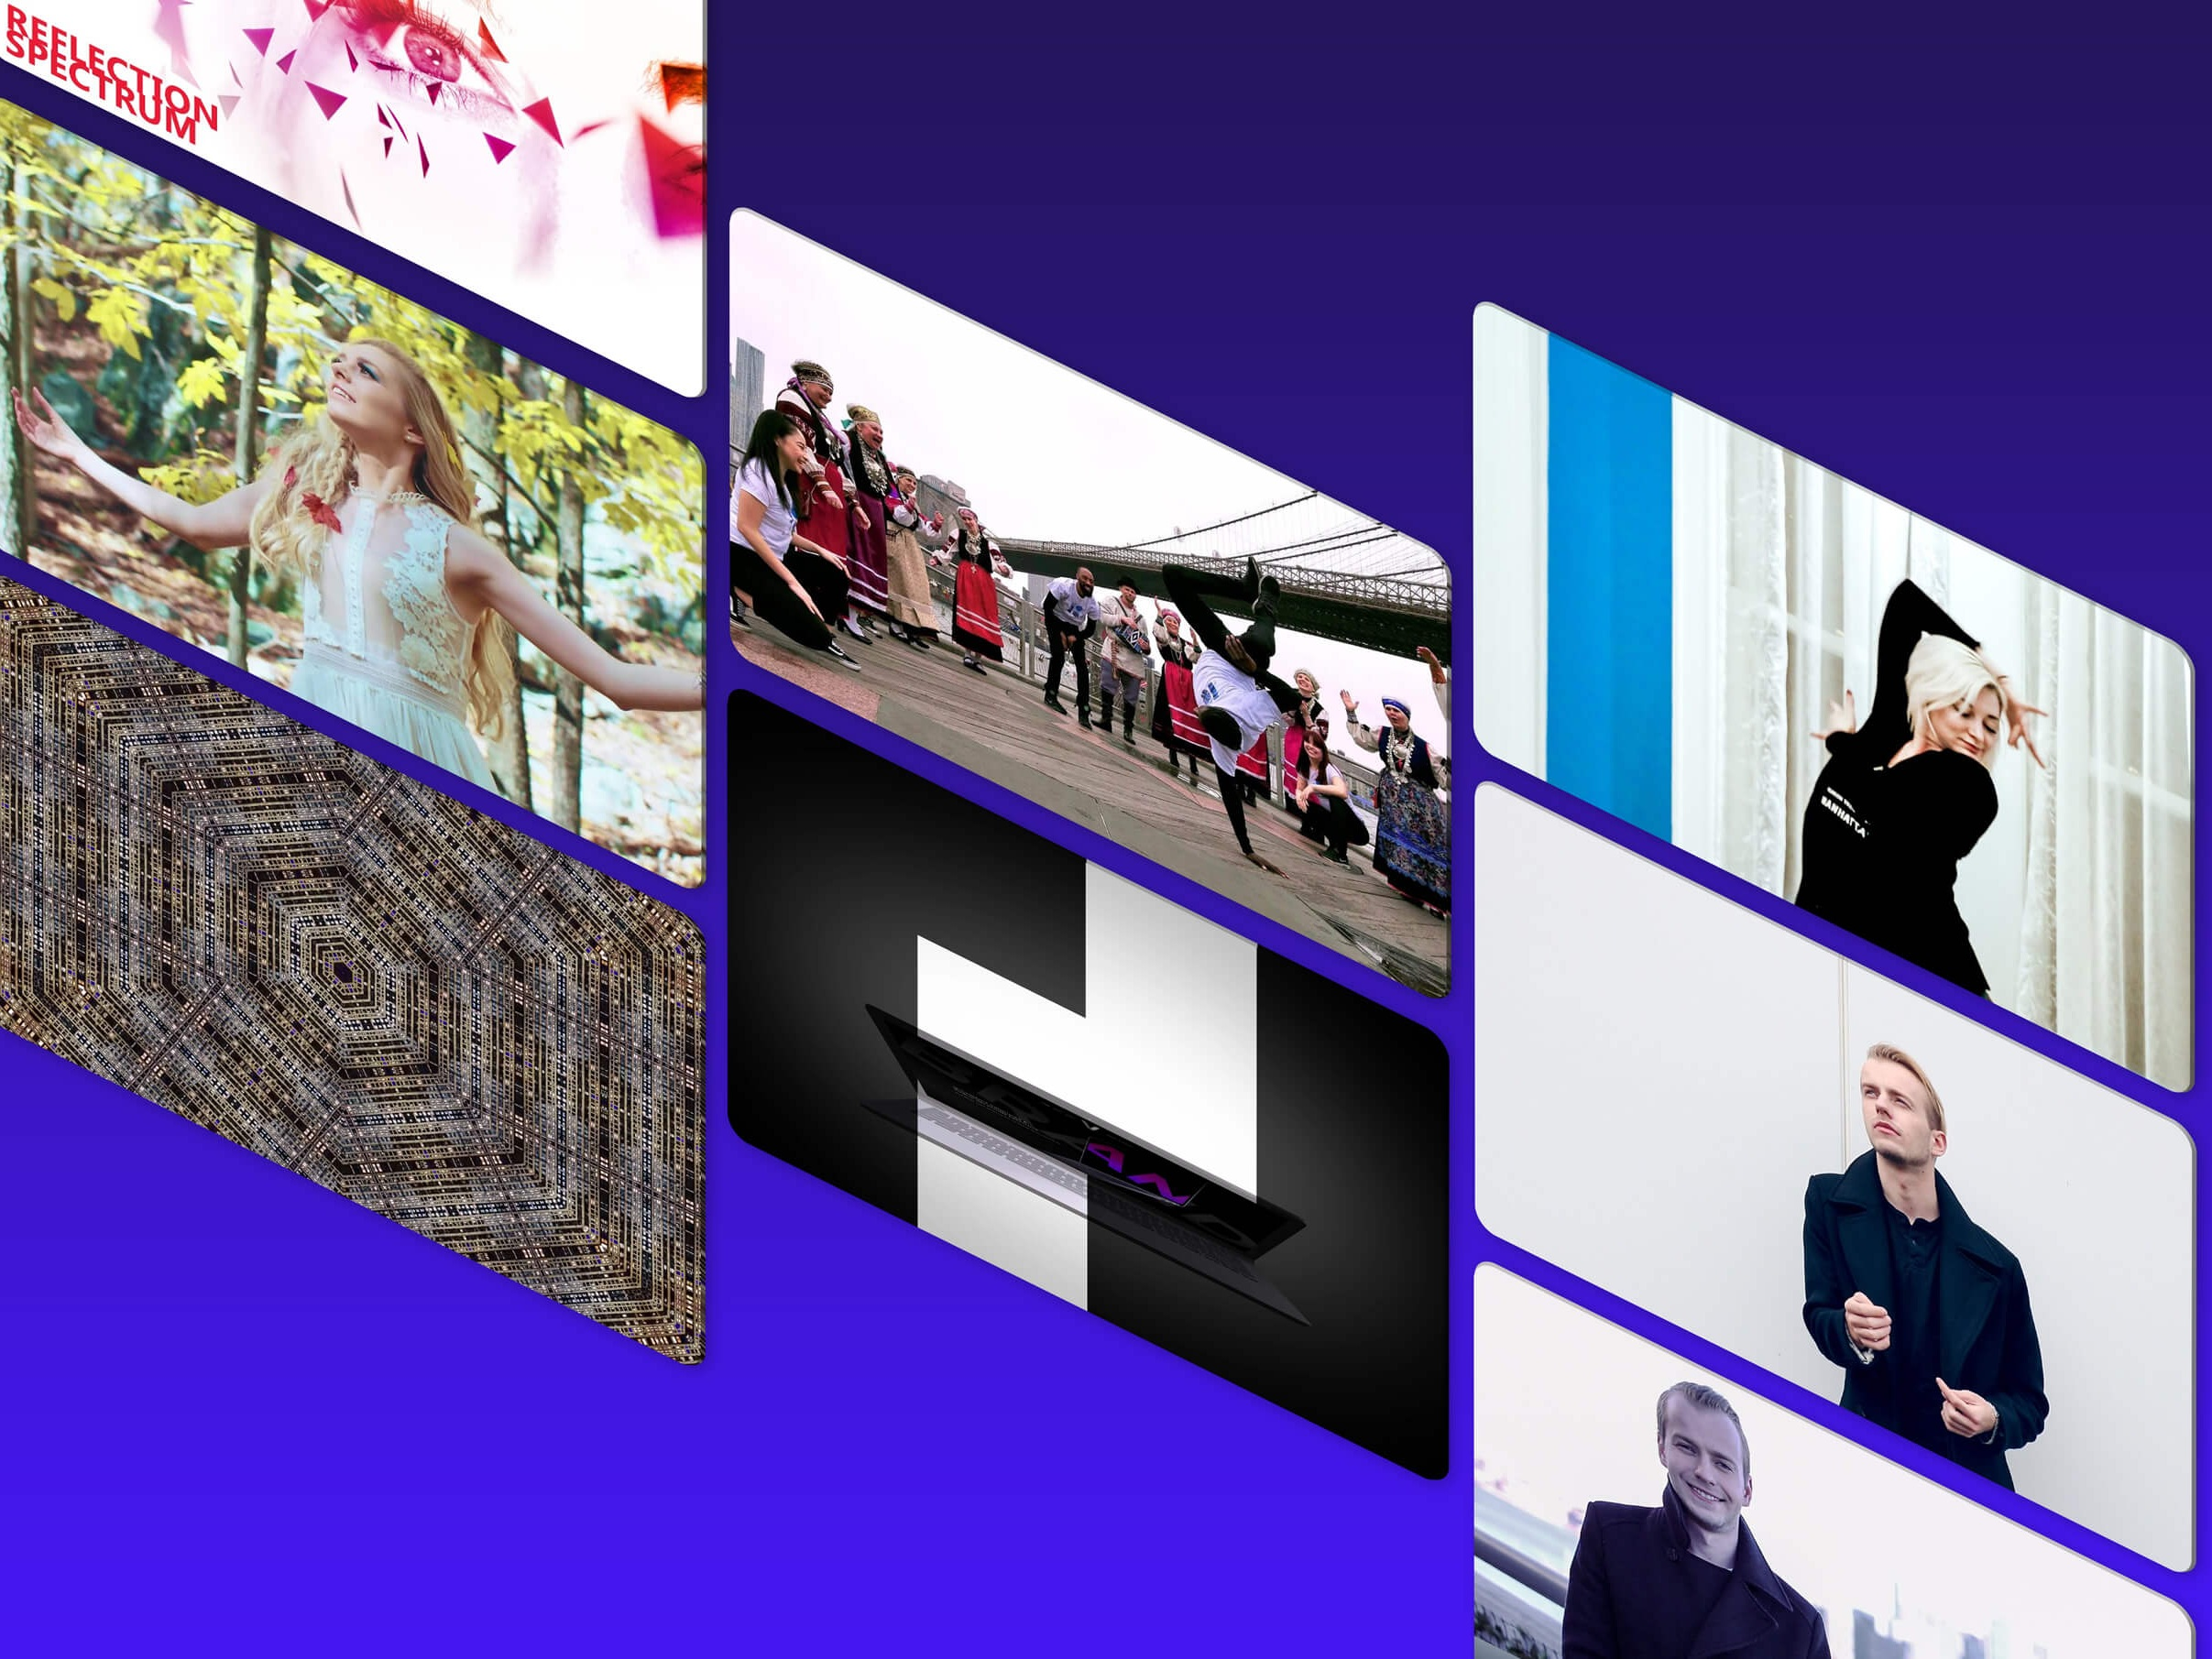 Motion-Based Mediums - Motion-based projects range from promotional videos and animated content to avant-garde video projects.Video DirectionVideo Editing & ProductionPerformance & ActingMotion-based Ads & Animations